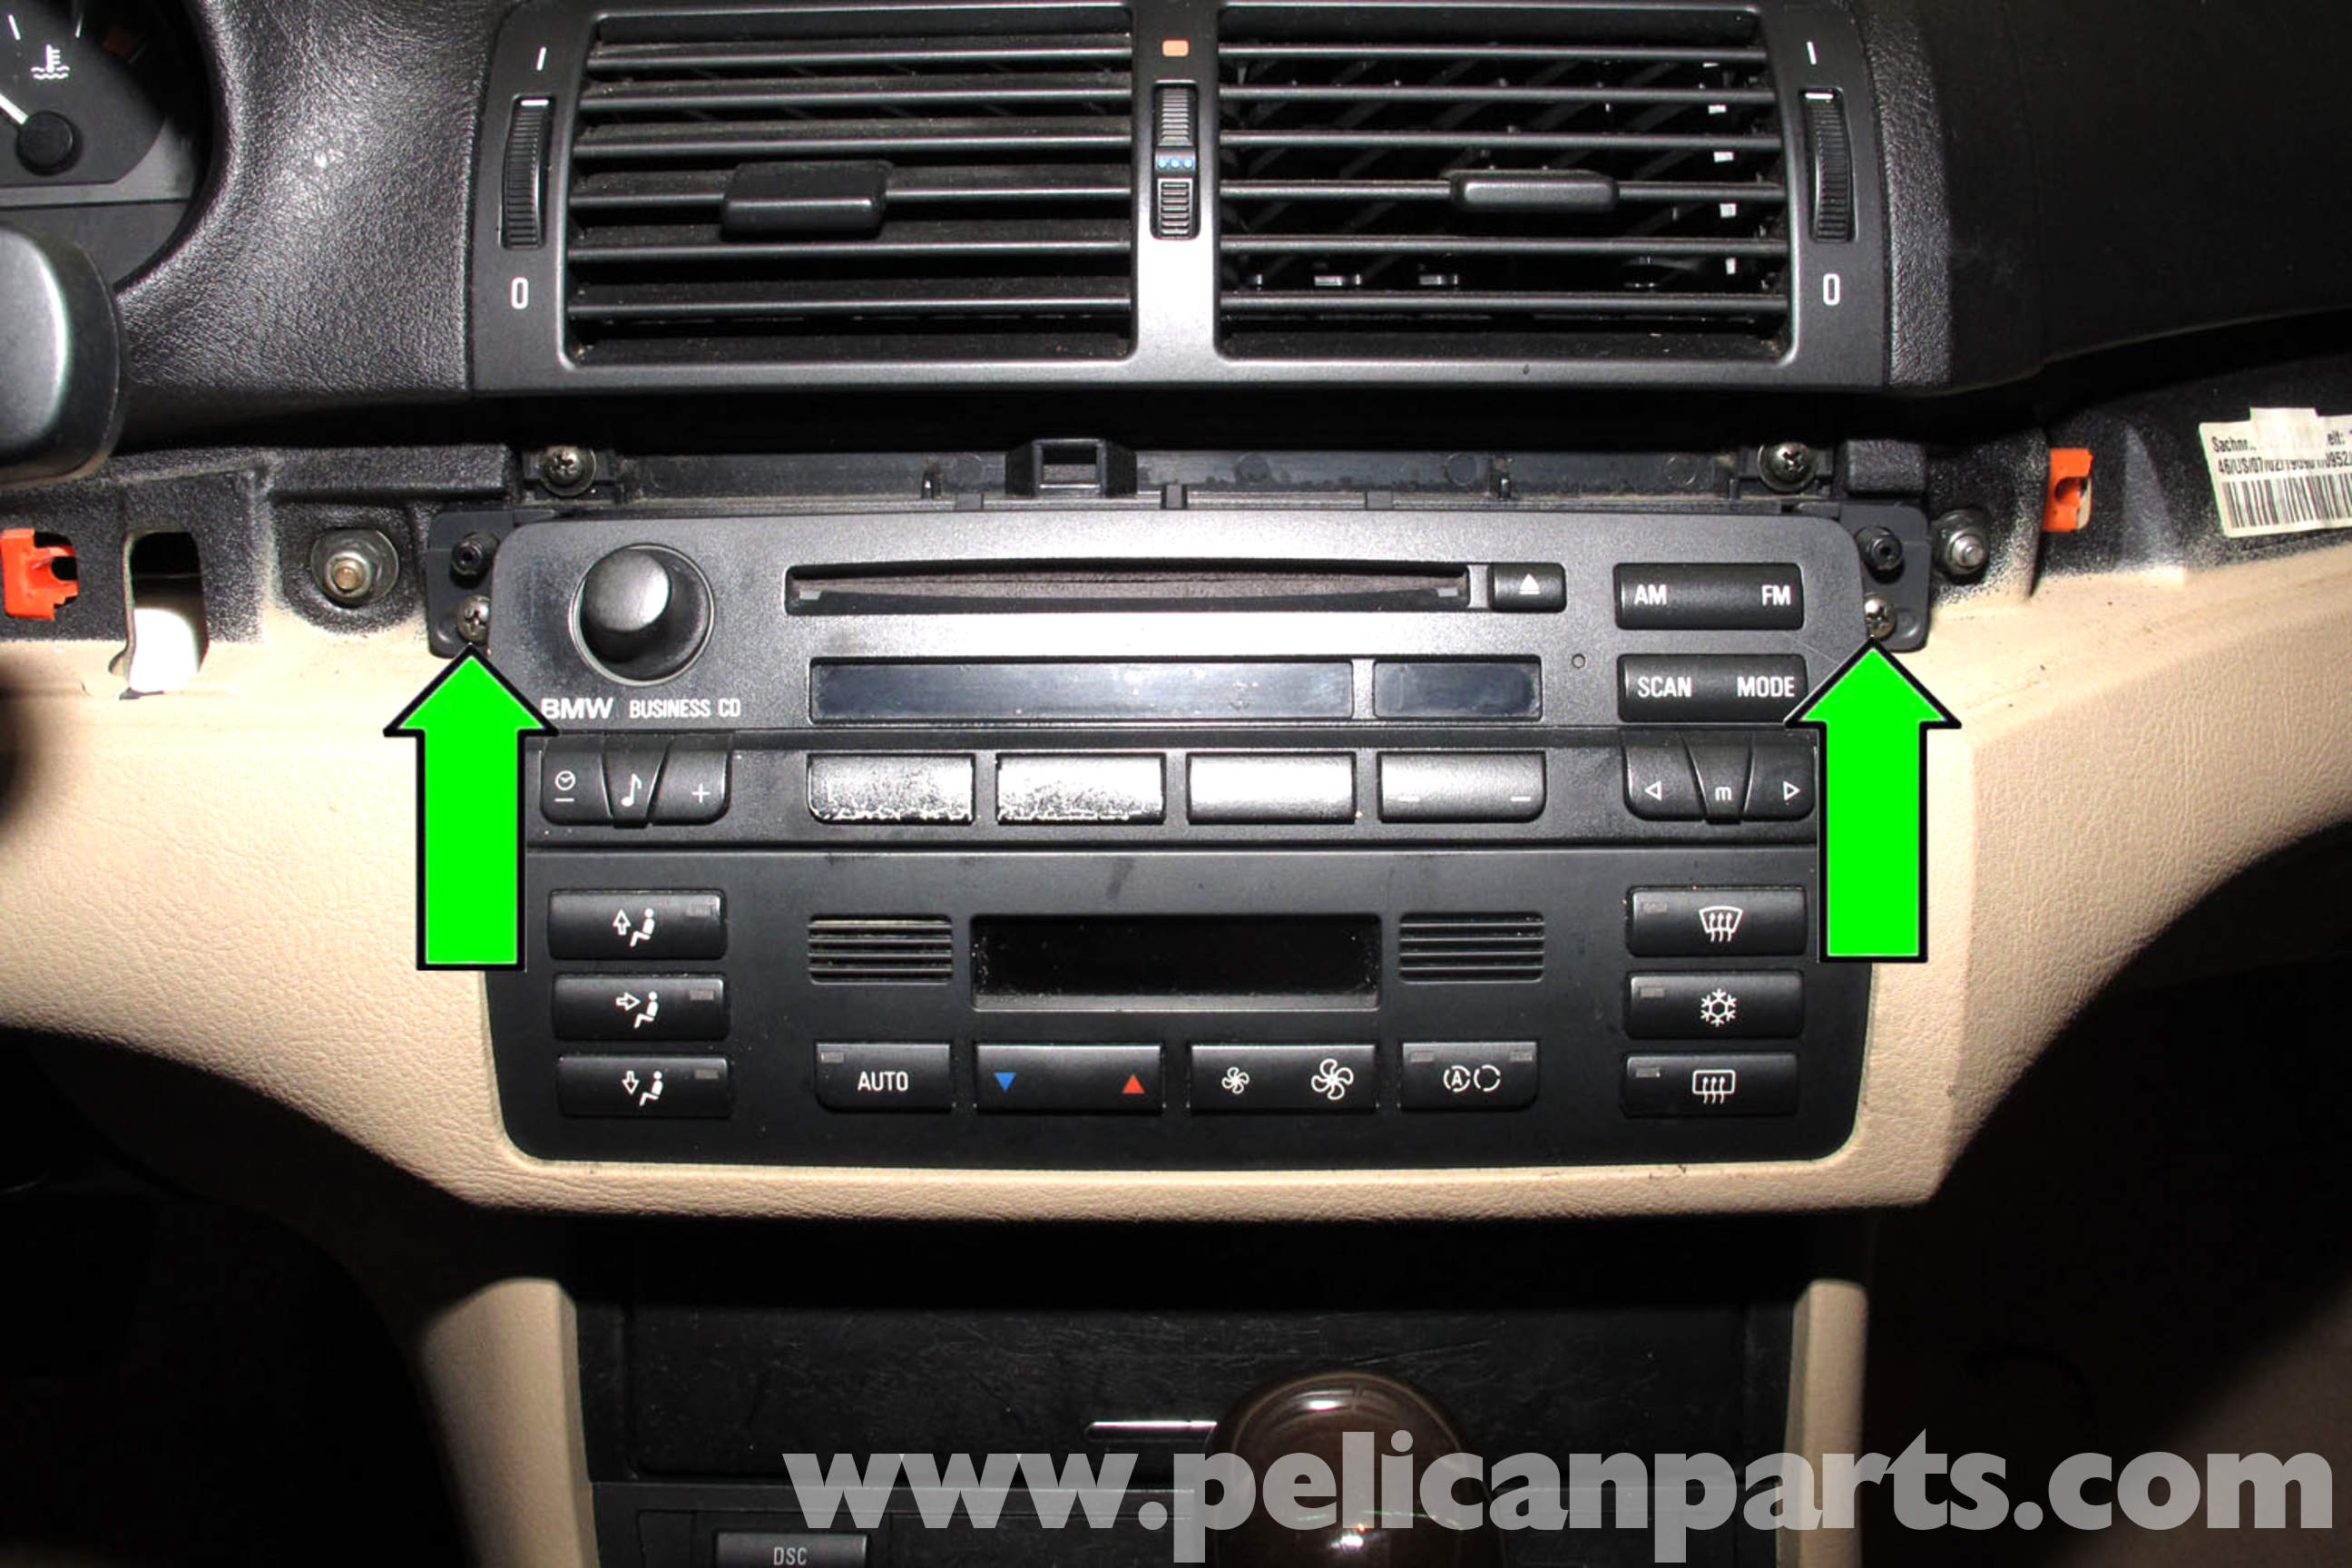 2003 Bmw X5 Wiring Diagram Similiar X Stereo Replacement 330i Wire Keywords E46 Radio Replacementon